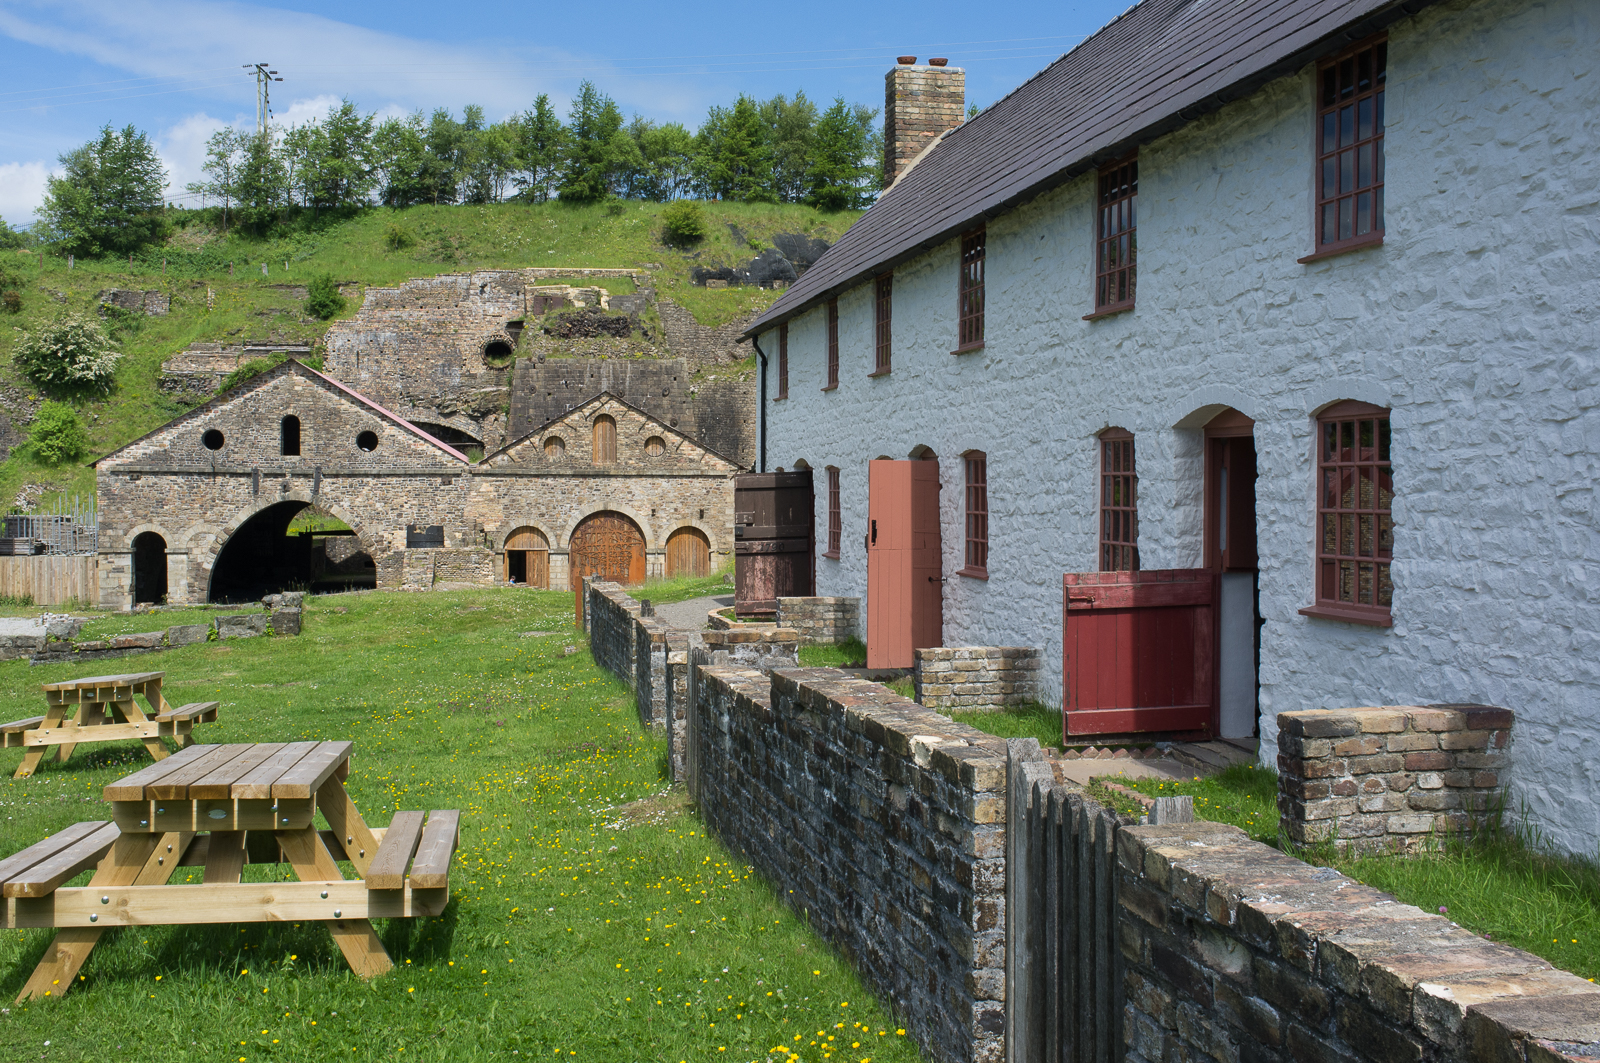 Company housing (Engine Row), Blaenavon - Wales